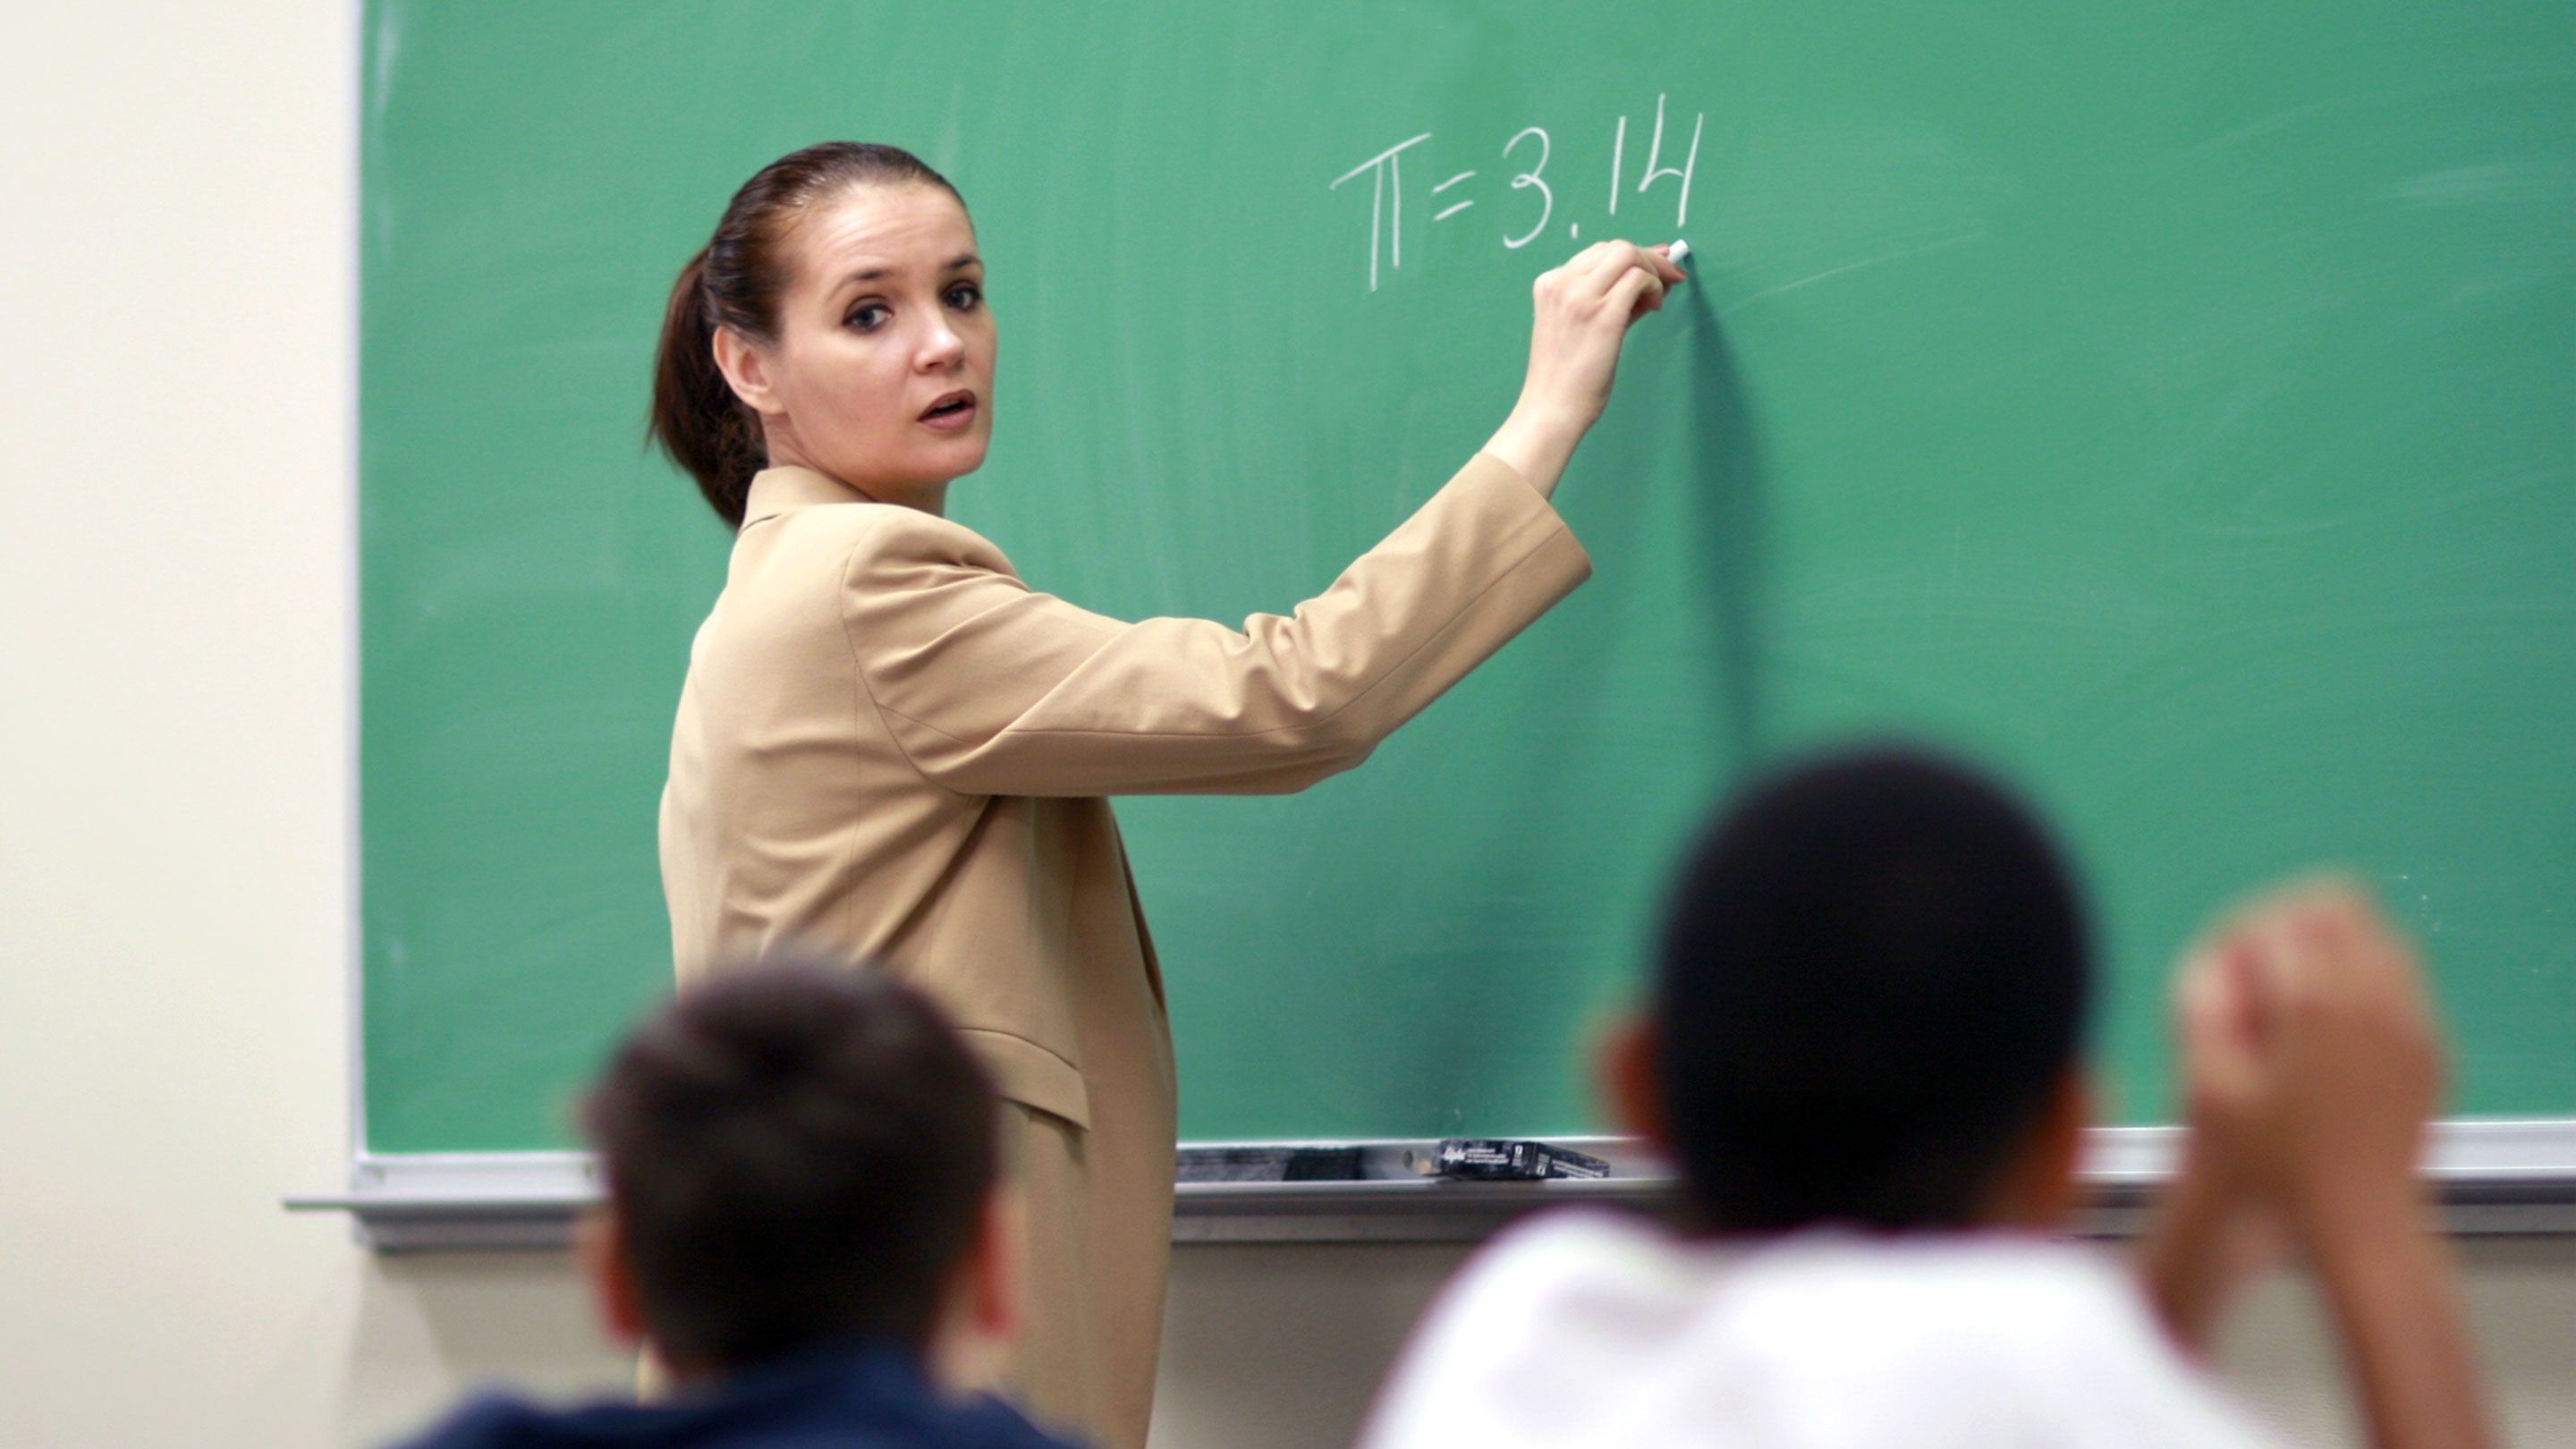 New Teachers: How to Develop 'The Look'